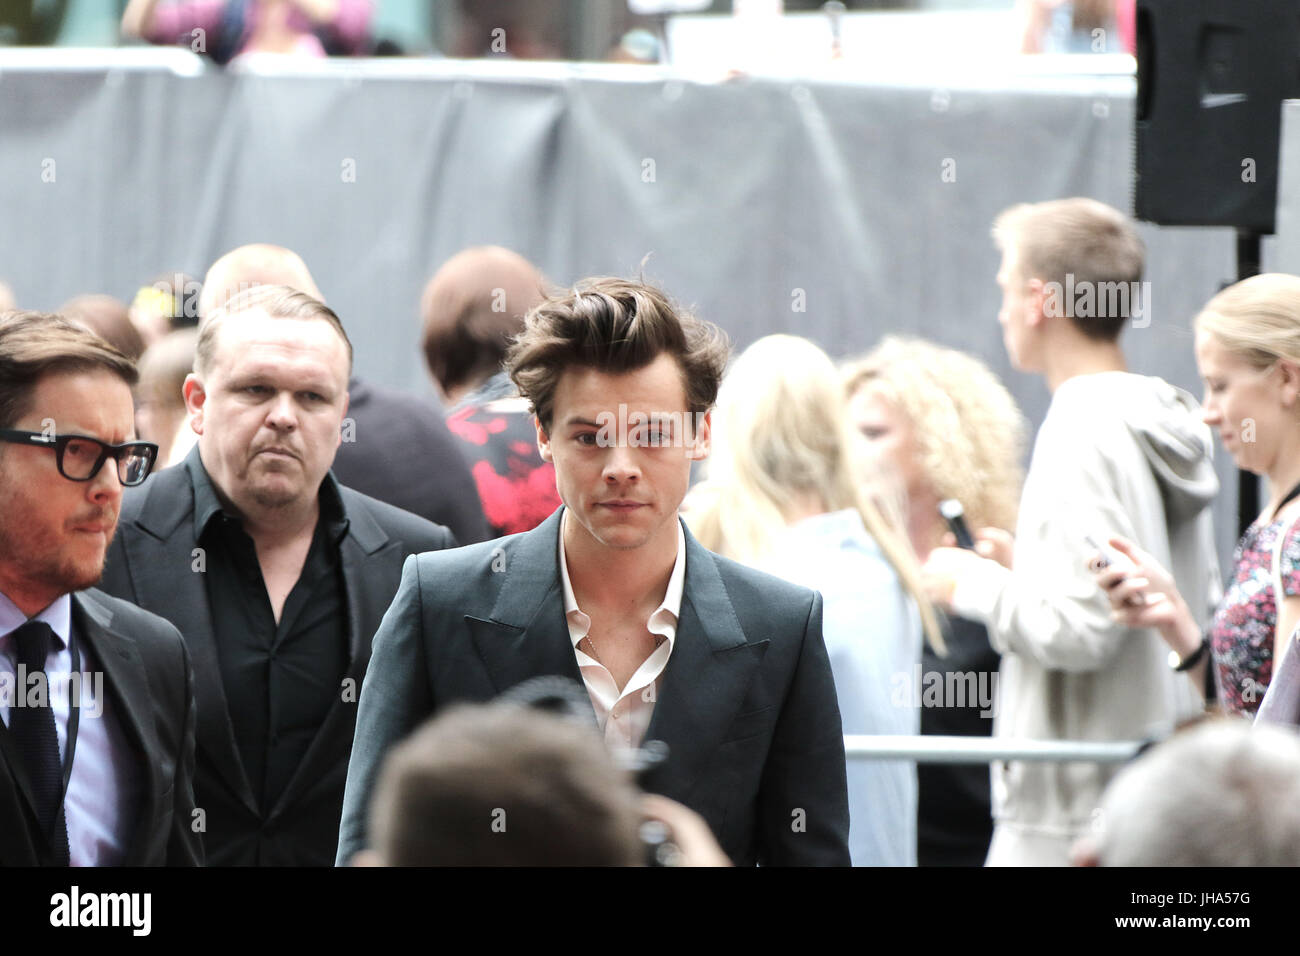 London, UK. 13th July, 2017. Harry Styles, Dunkirk - World film premiere, Leicester Square Gardens, London UK, 13 - Stock Image